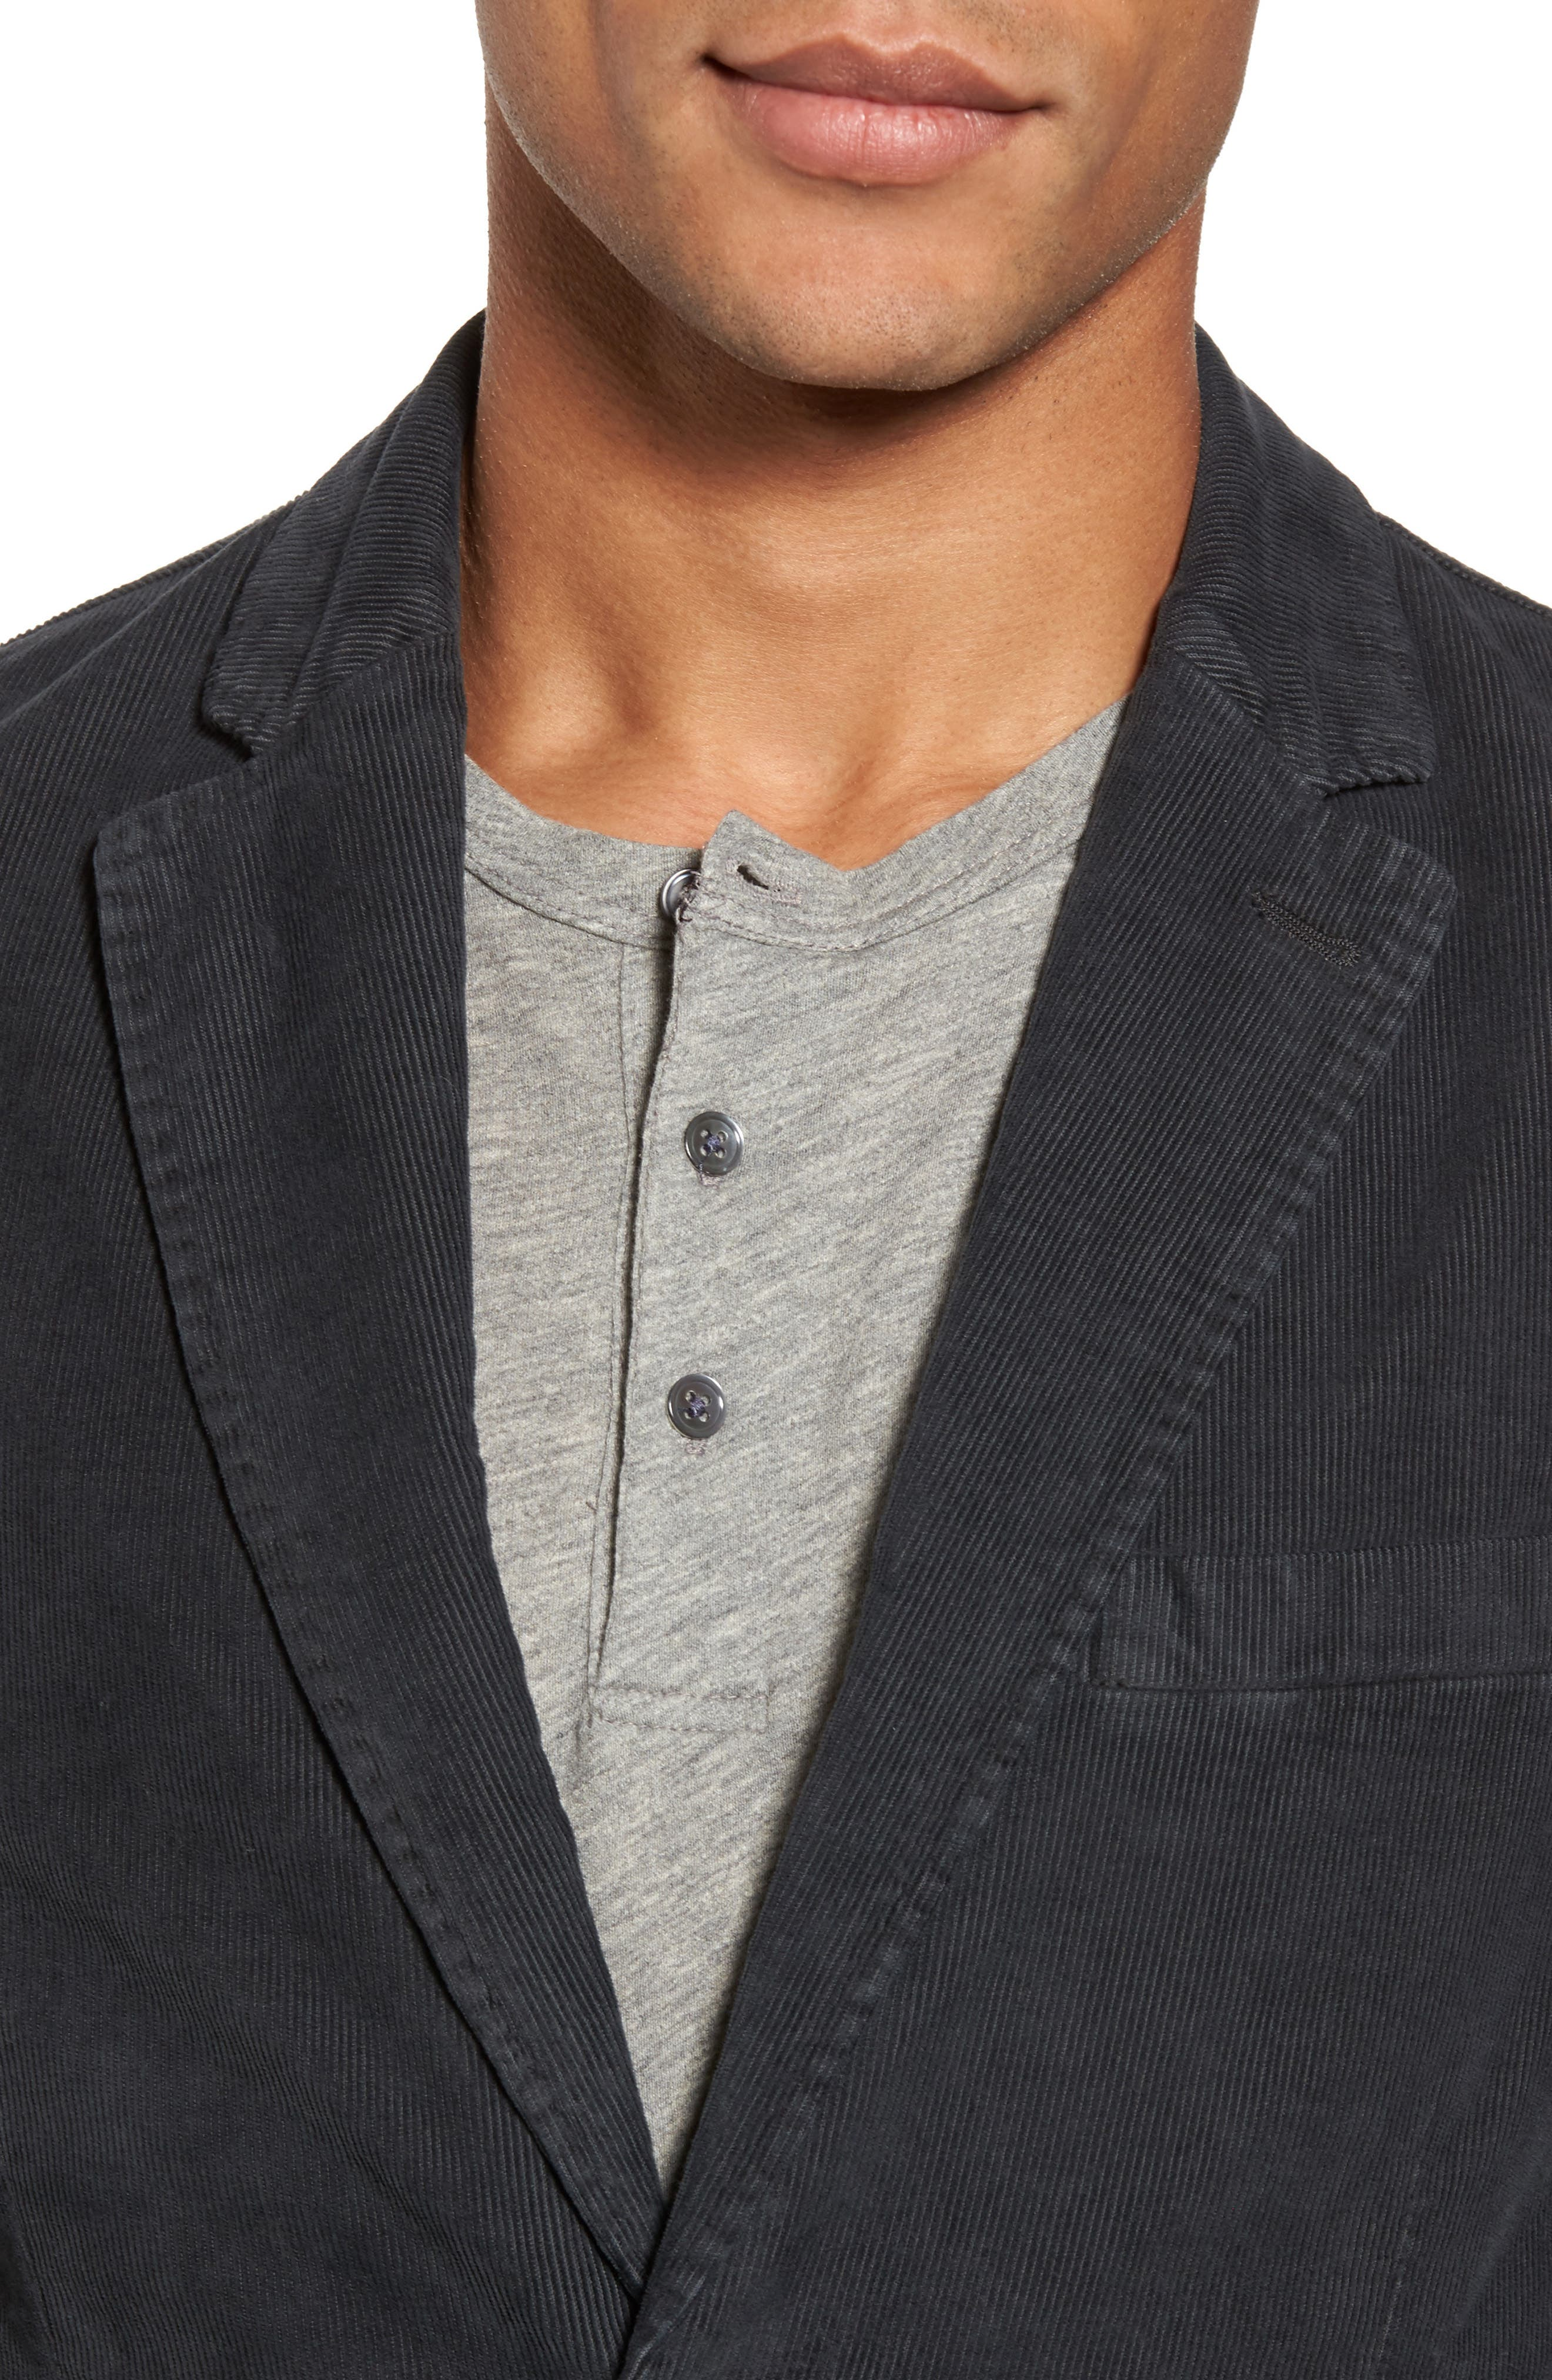 Stretch Corduroy Jacket,                             Alternate thumbnail 4, color,                             020